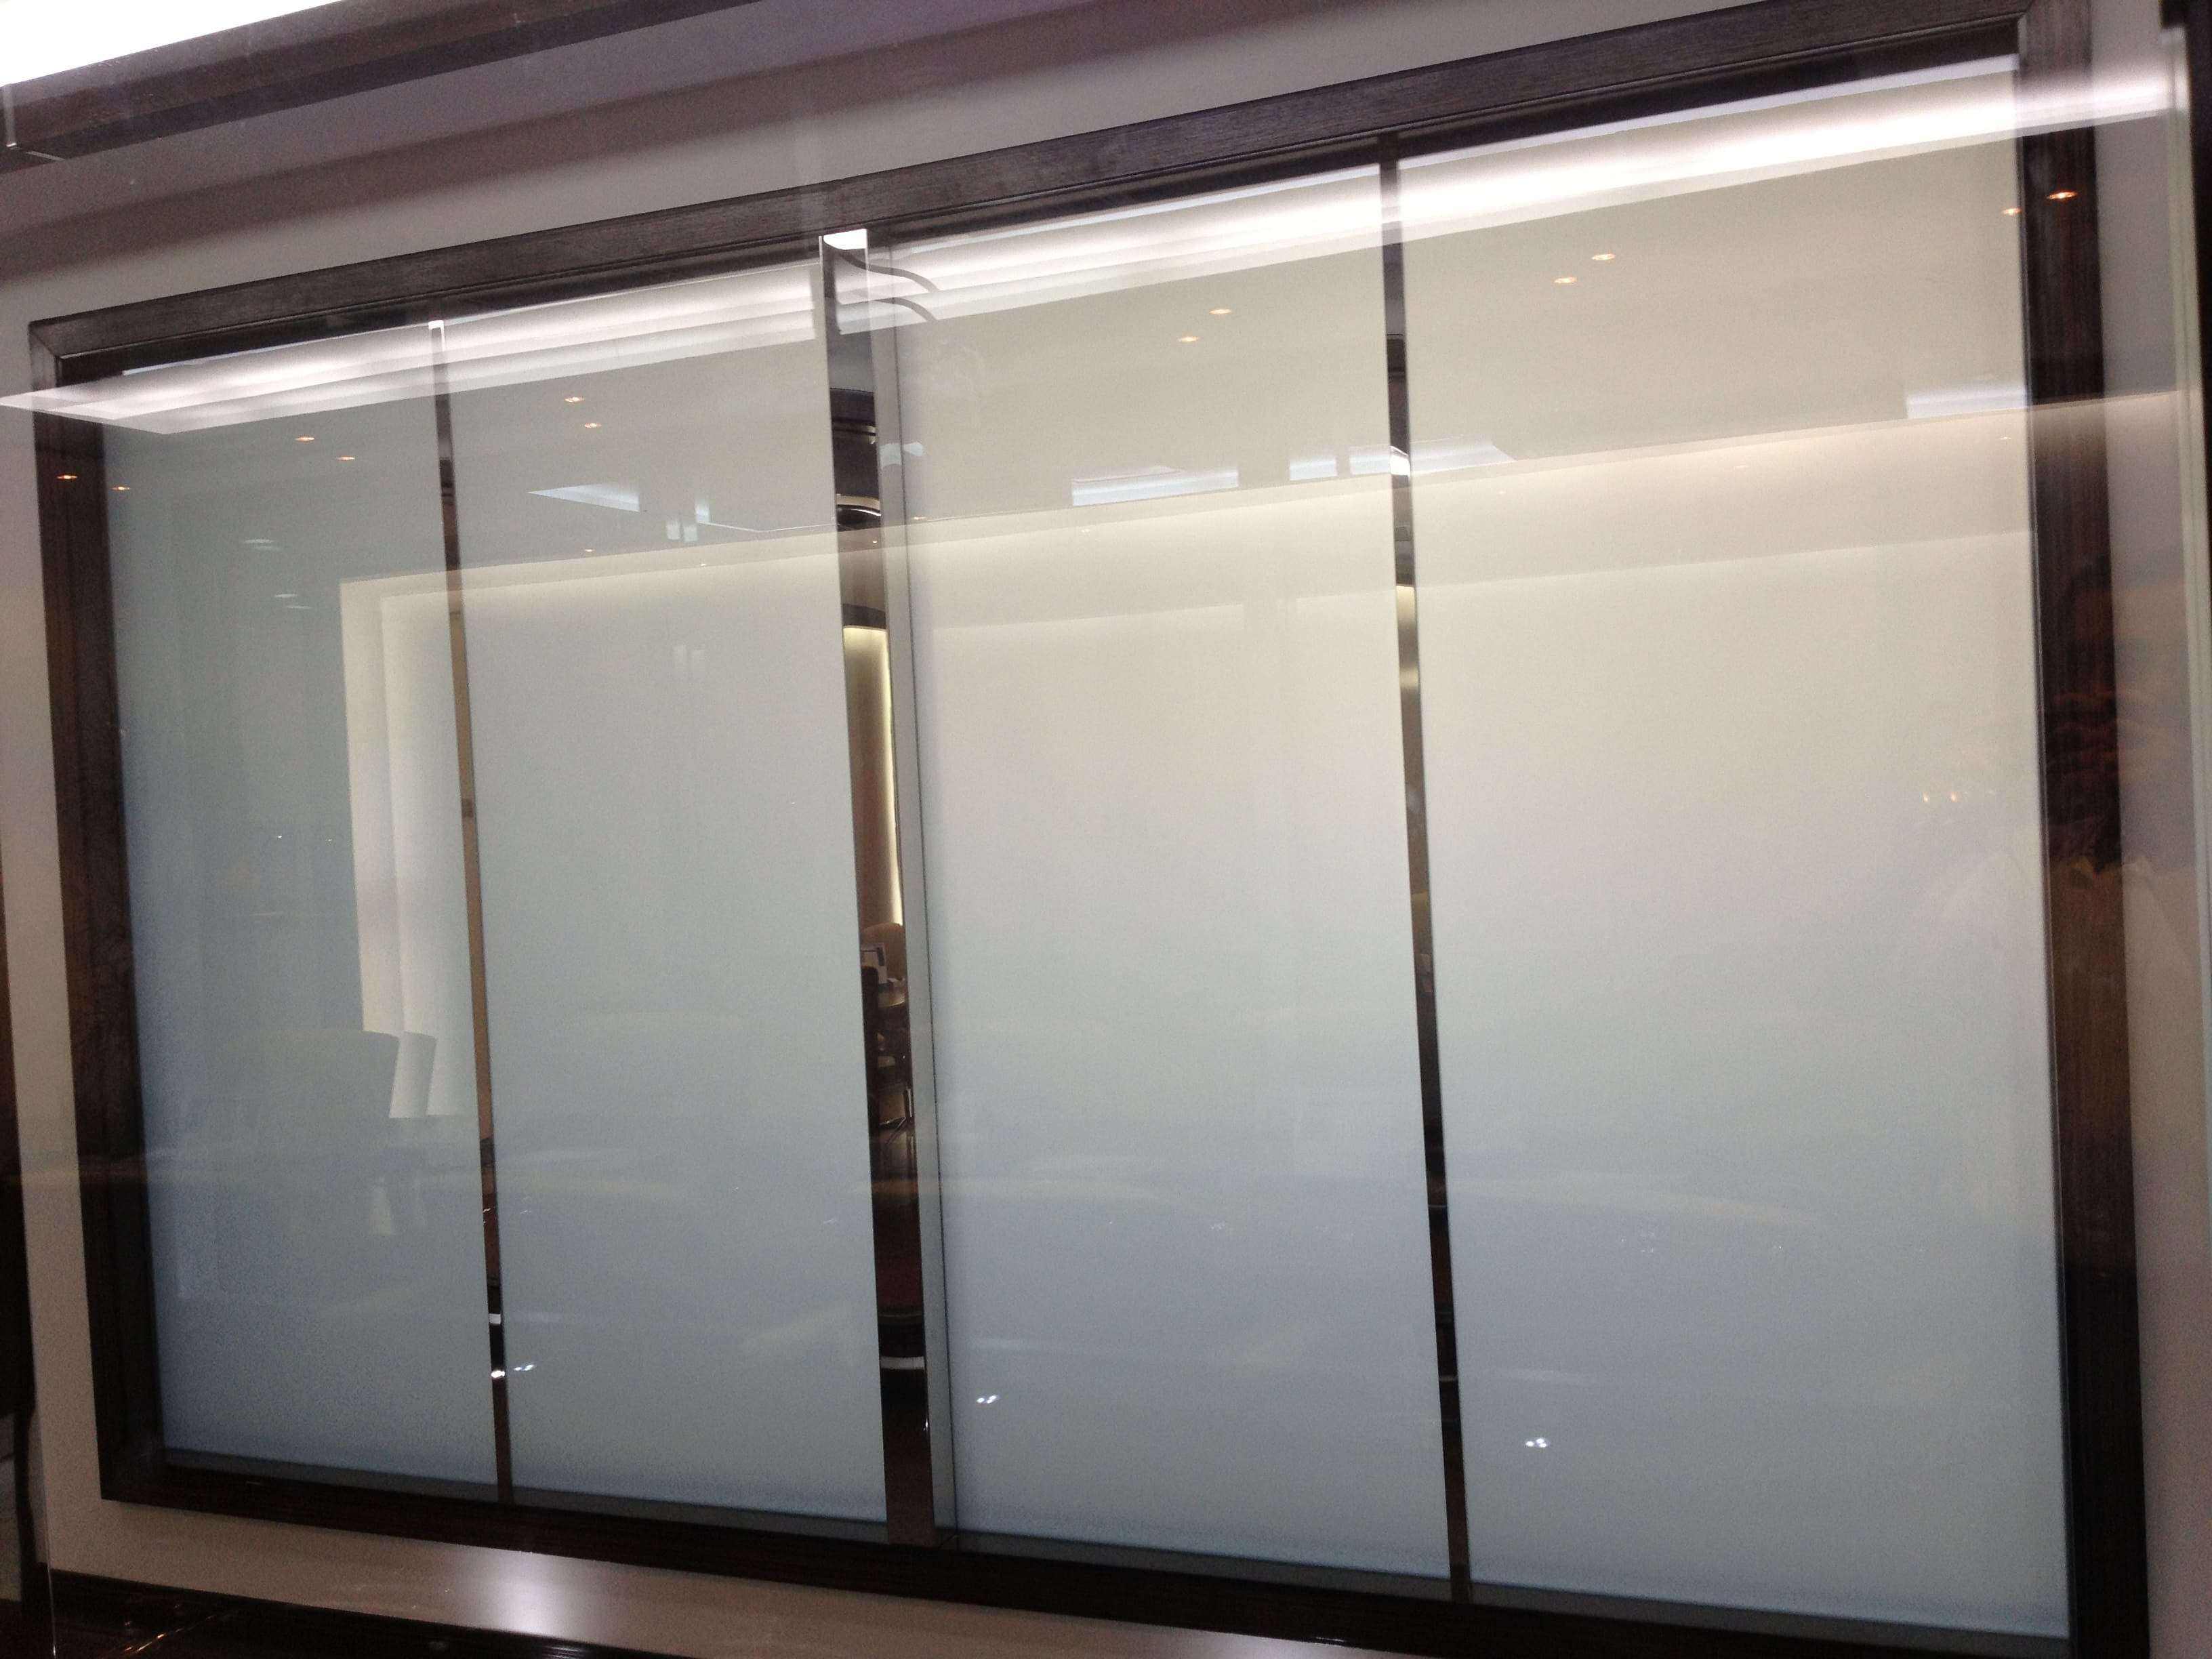 Smart Film for application on an office partition switched to off